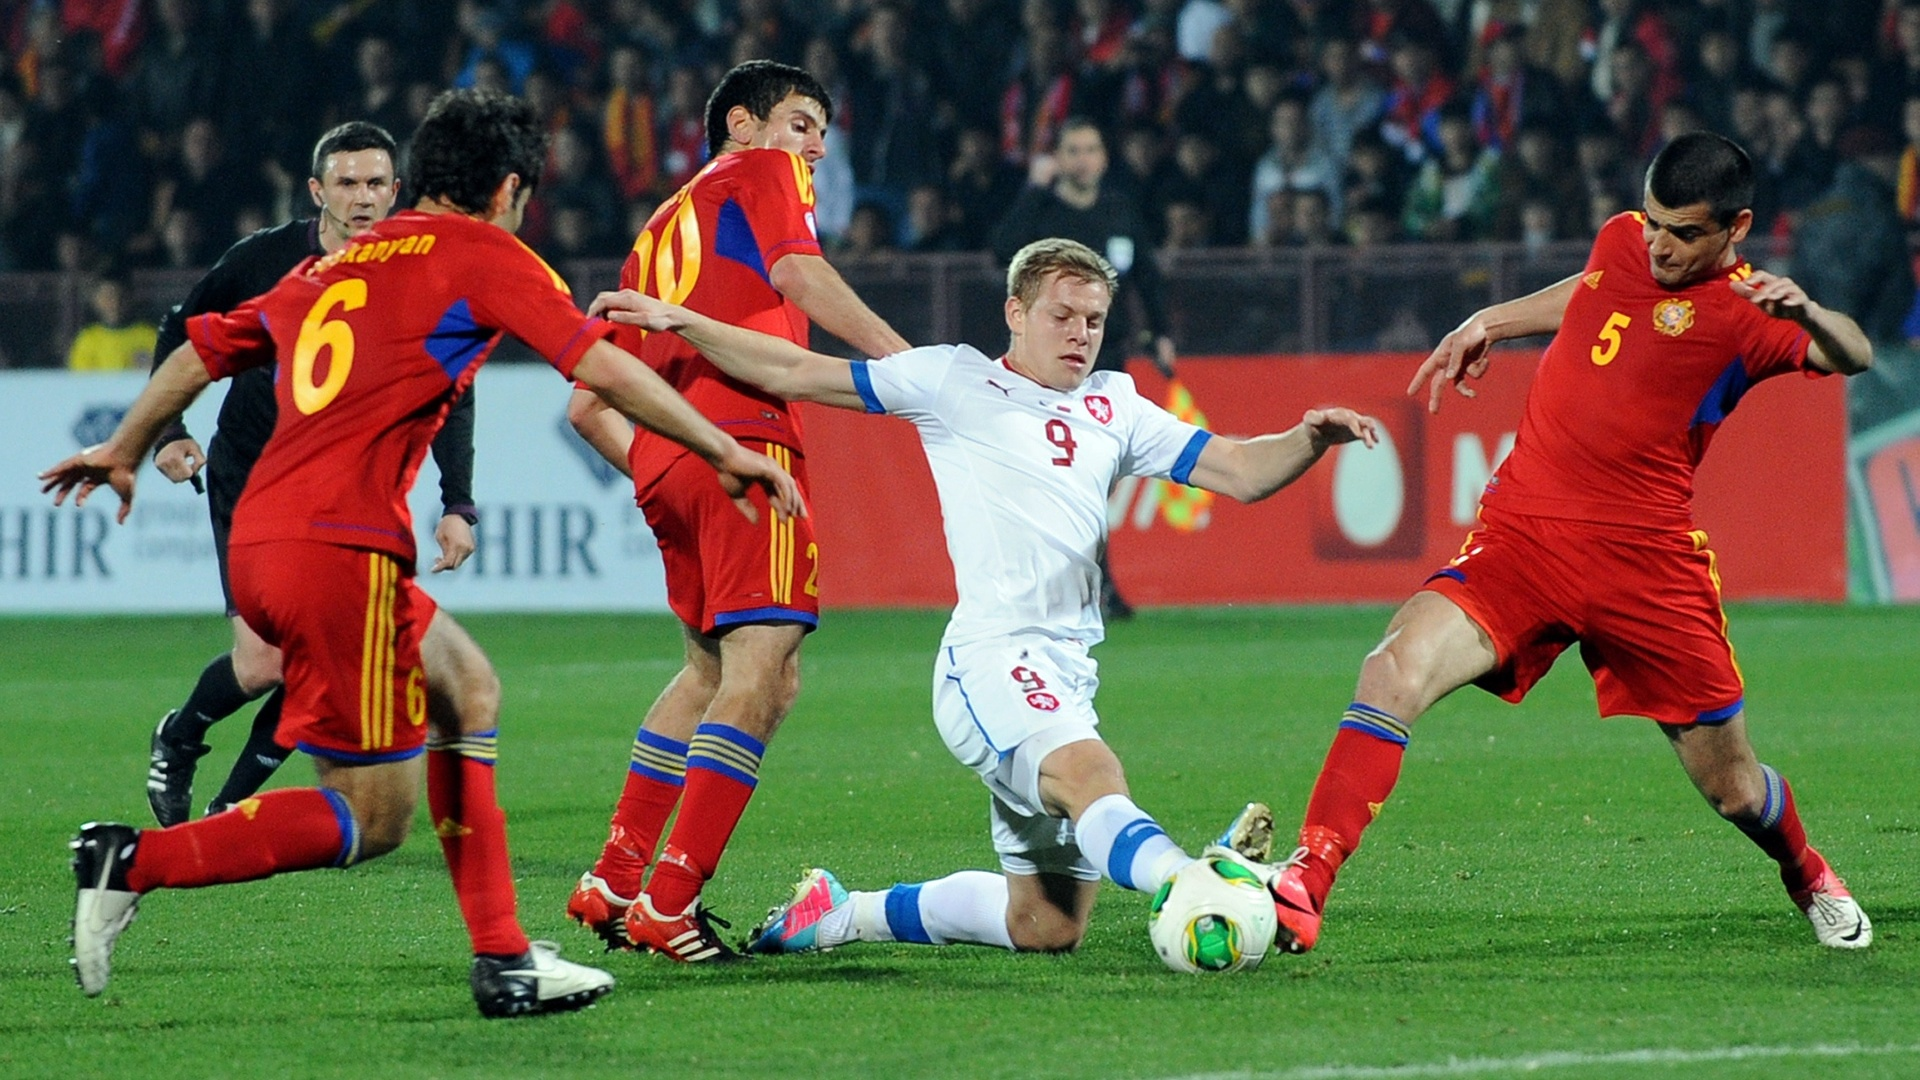 26.mar.2013 - Matej Vydra (centro), da Repblica Tcheca, vai com tudo na divida com Robert Arzumanyan (5), da Armnia; tchecos venceram por 3 a 0